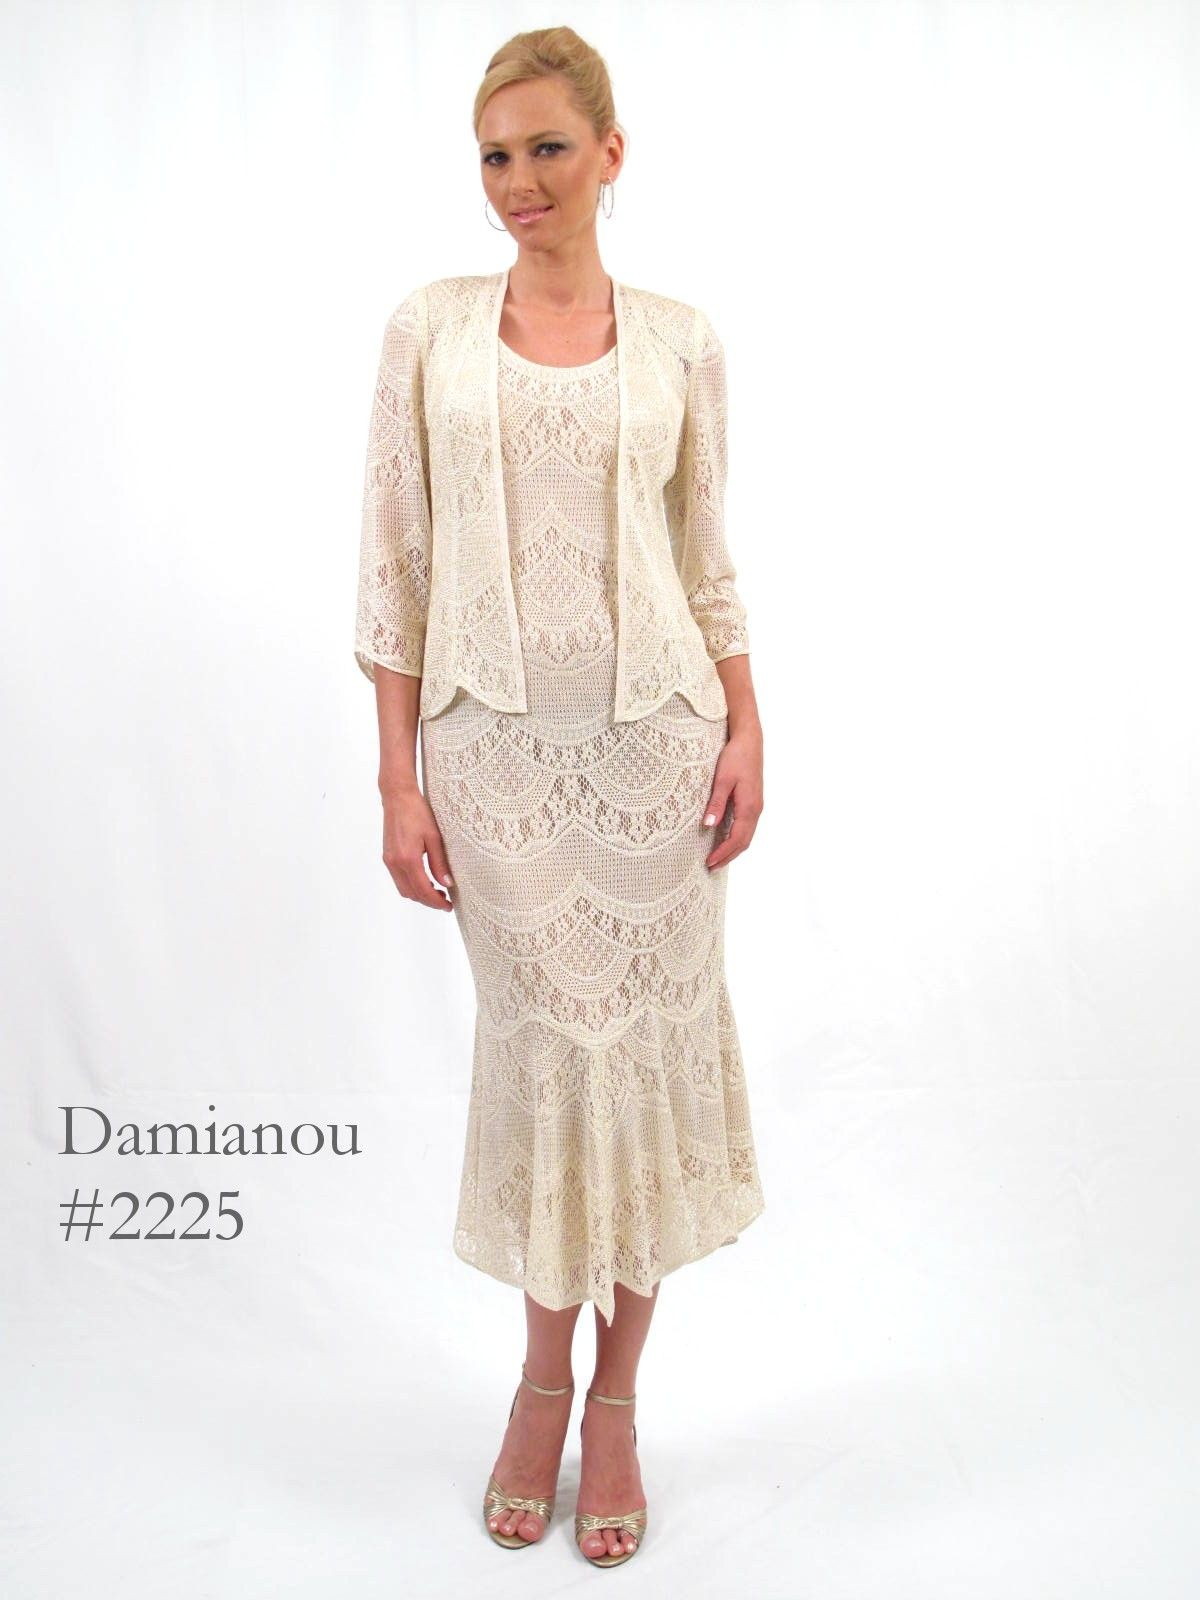 Damianou Lace Dresses Are Hot This Season!!!  Informal wedding